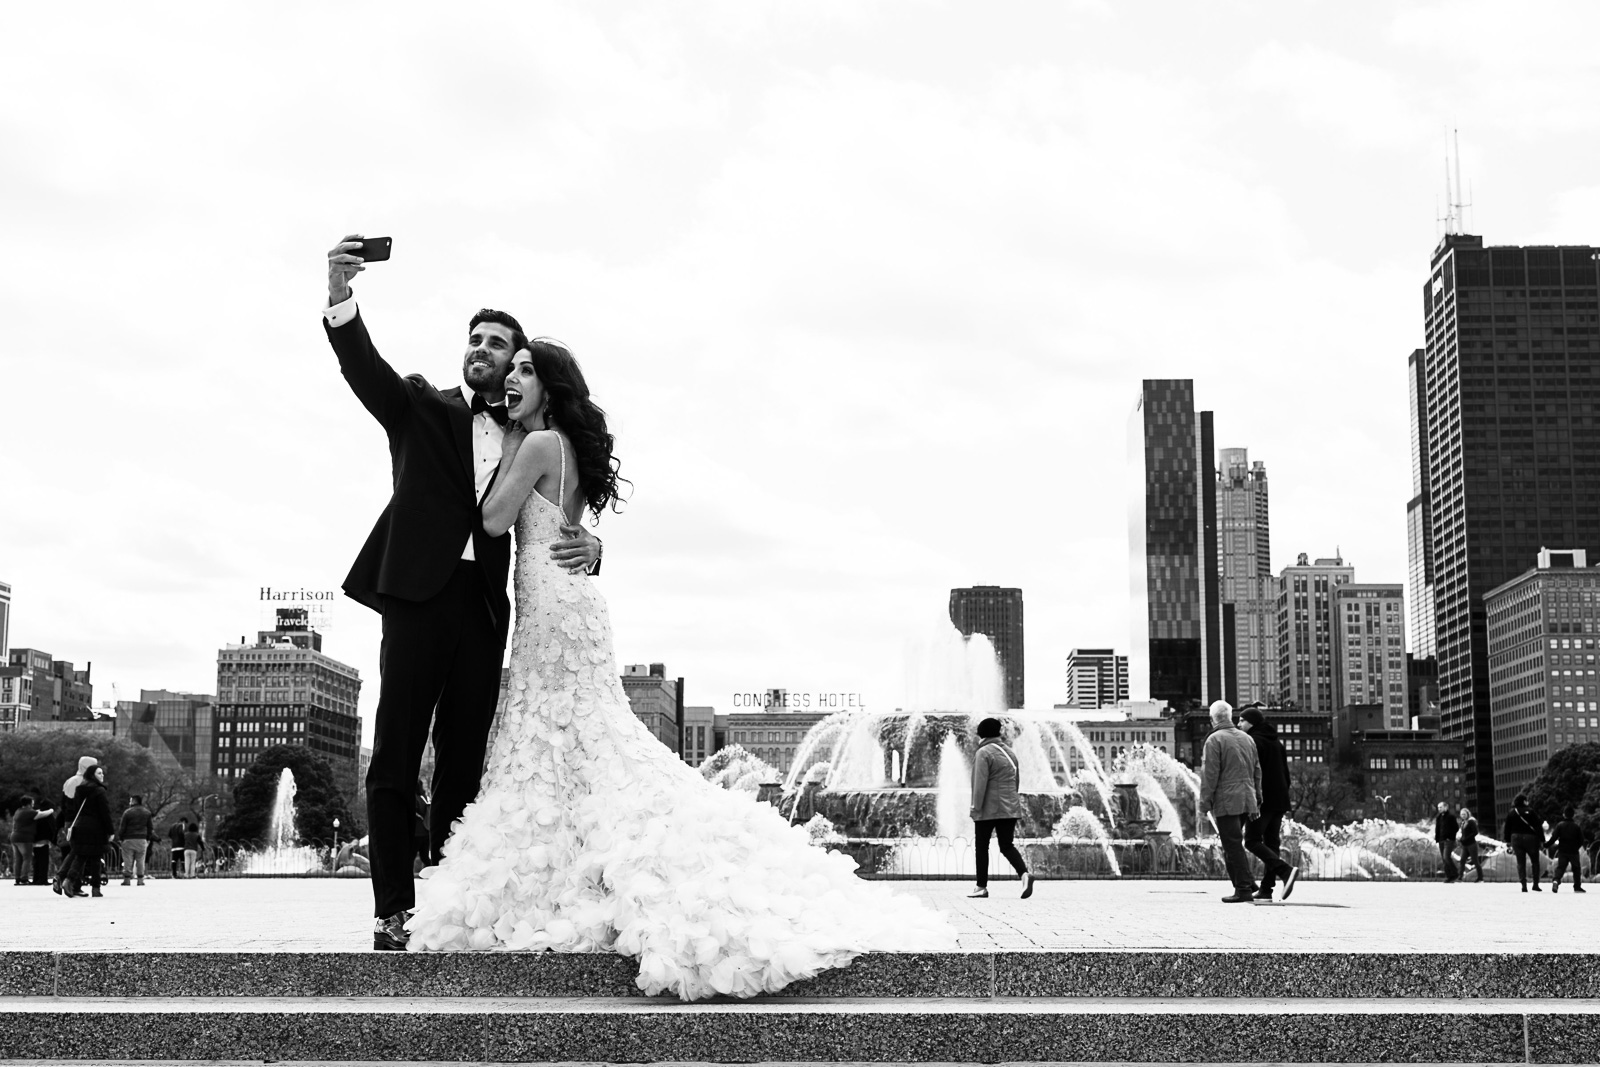 Fun non traditional wedding photo inspiration - our couple took a selfie with one of the iconic Chicago backdrops at Buckingham Fountain.